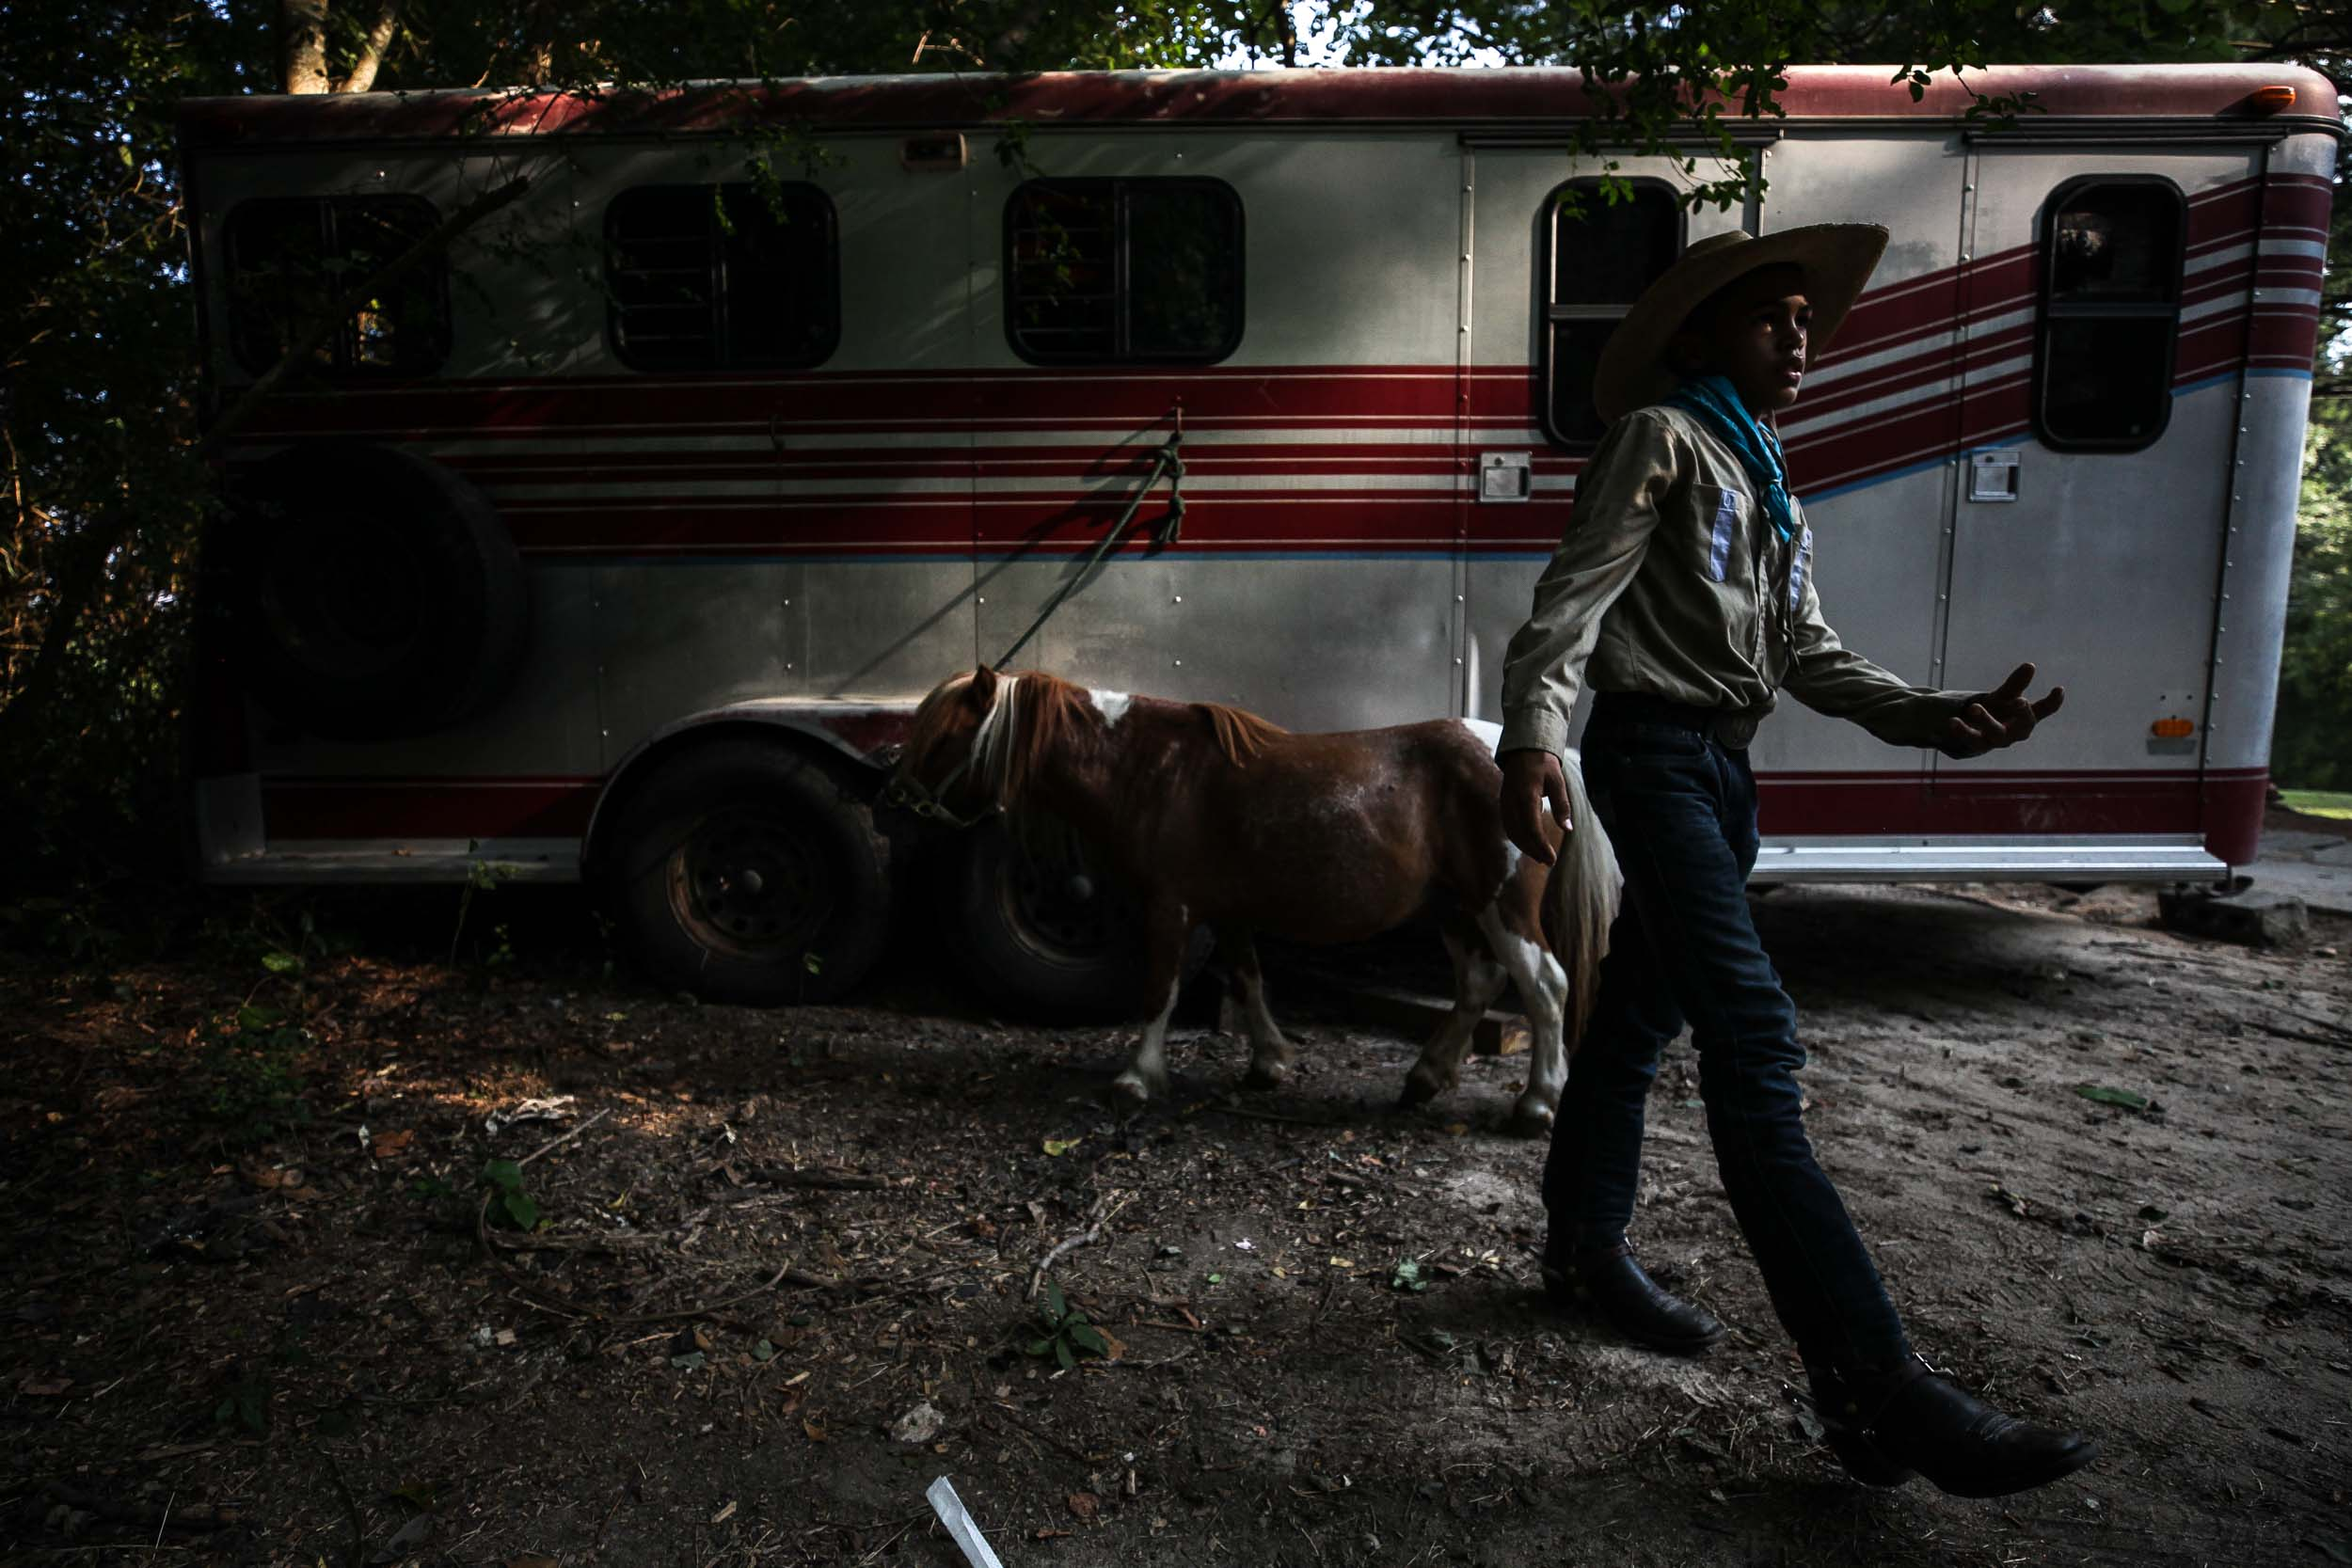 Logan Dansby, 12, walks away from his pony on a ranch off of Flat Shoals Parkway, Tuesday, July 30, 2019, in Union City, Ga. Branden Camp for AJC